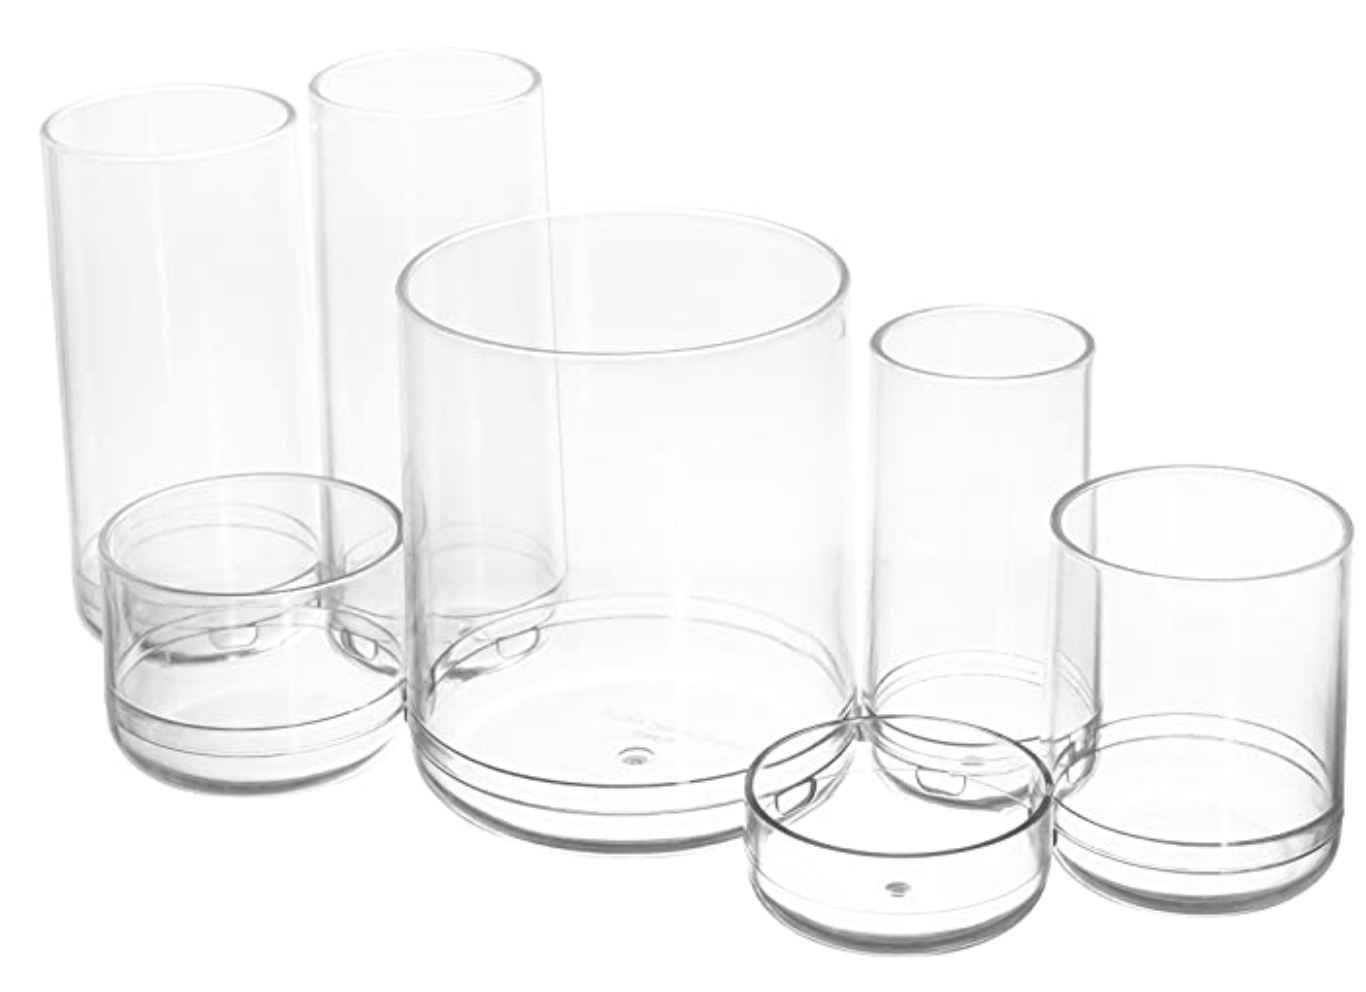 Storage For Crafts Tools ROUND ACRYLIC ORGANIZER rbo0920 Preview Image